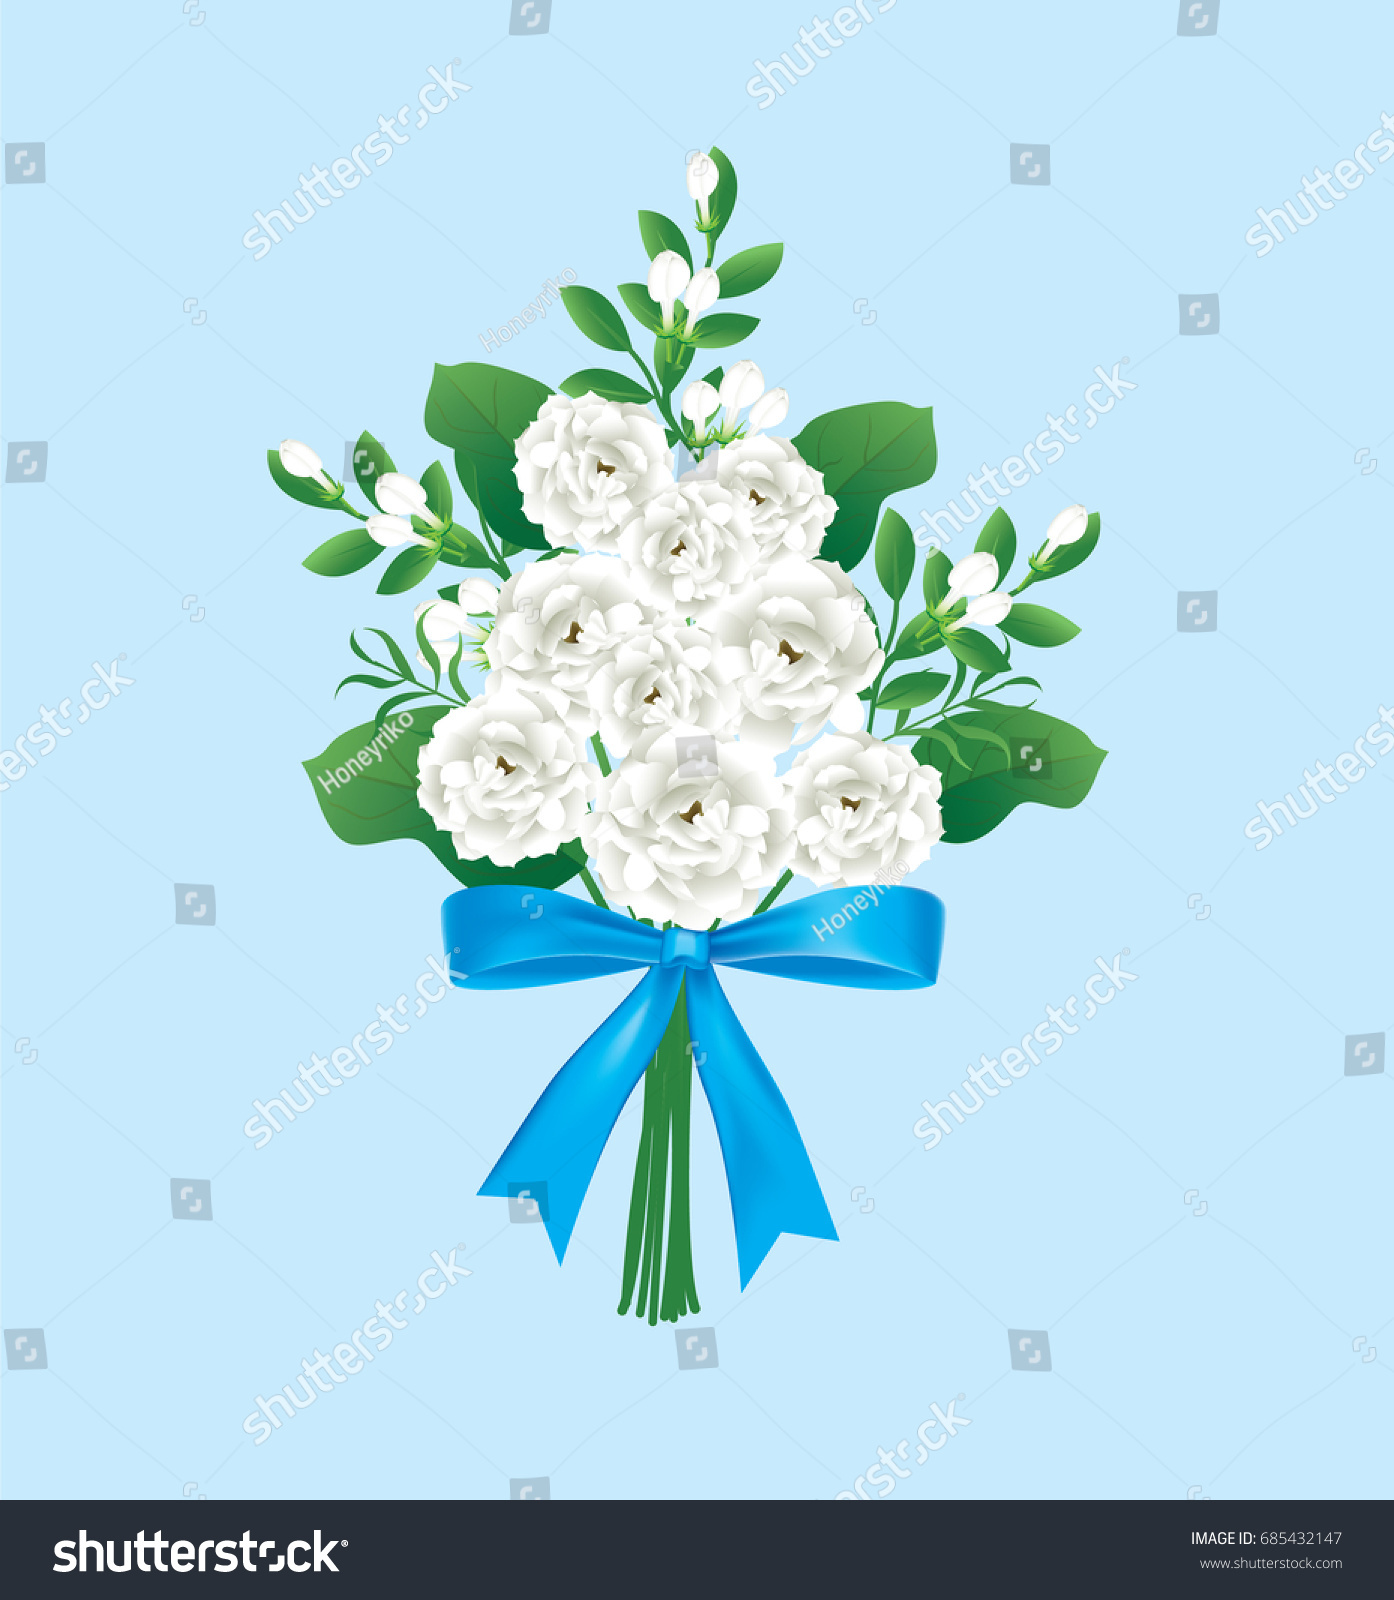 Thai white jasmine flower bouquet blue stock vector 2018 685432147 thai white jasmine flower bouquet with blue ribbon bow on blue backgroundvector illustration izmirmasajfo Image collections